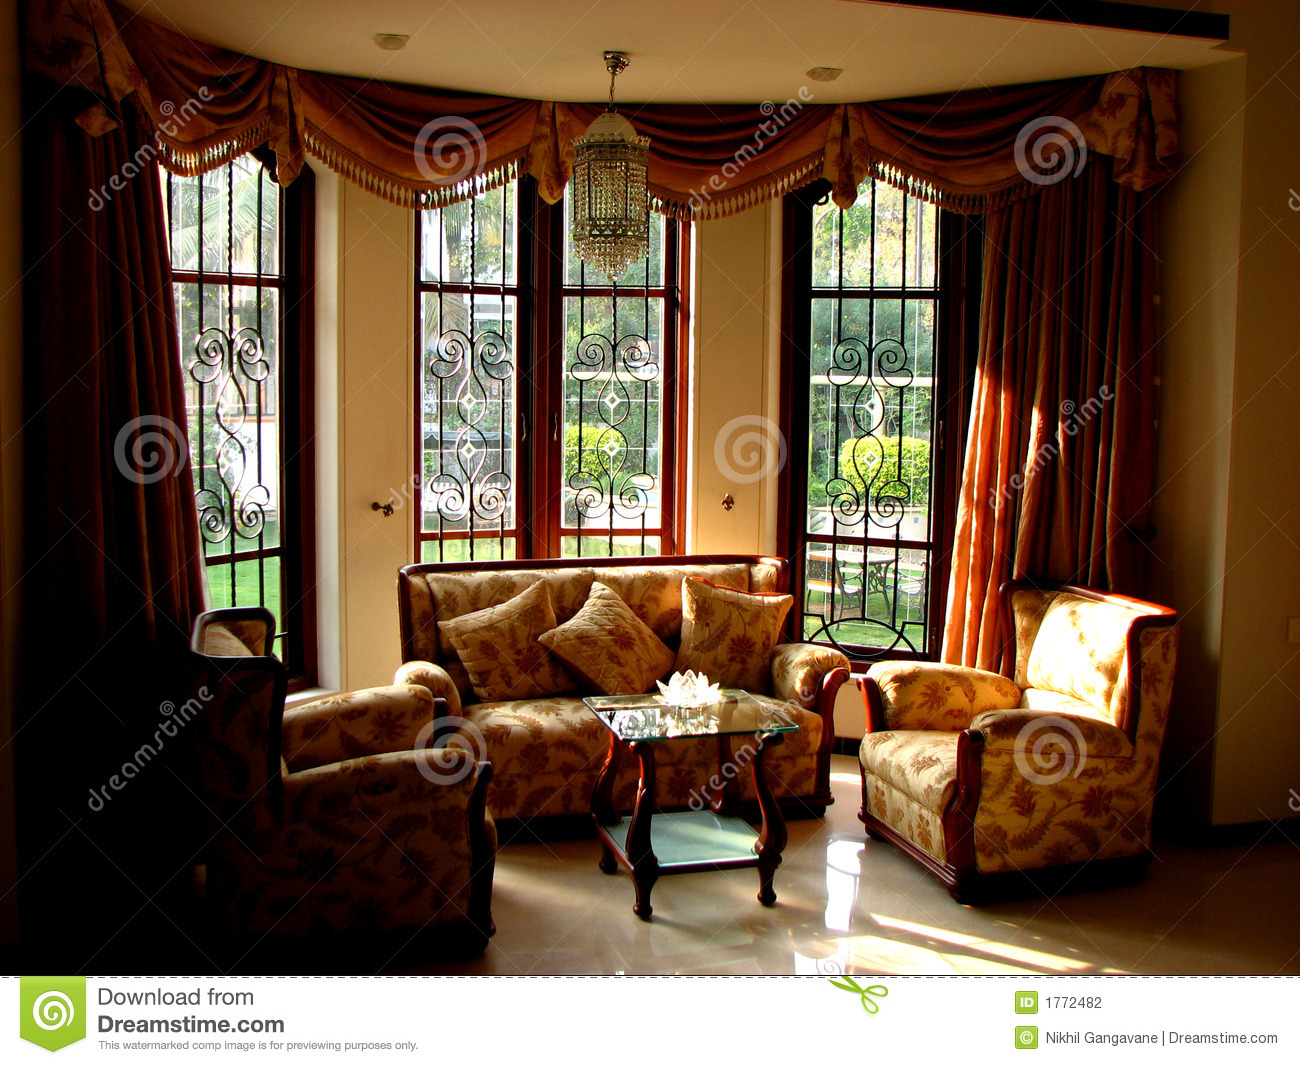 Beautiful interiors stock photography image 1772482 for Beautiful house interiors photos